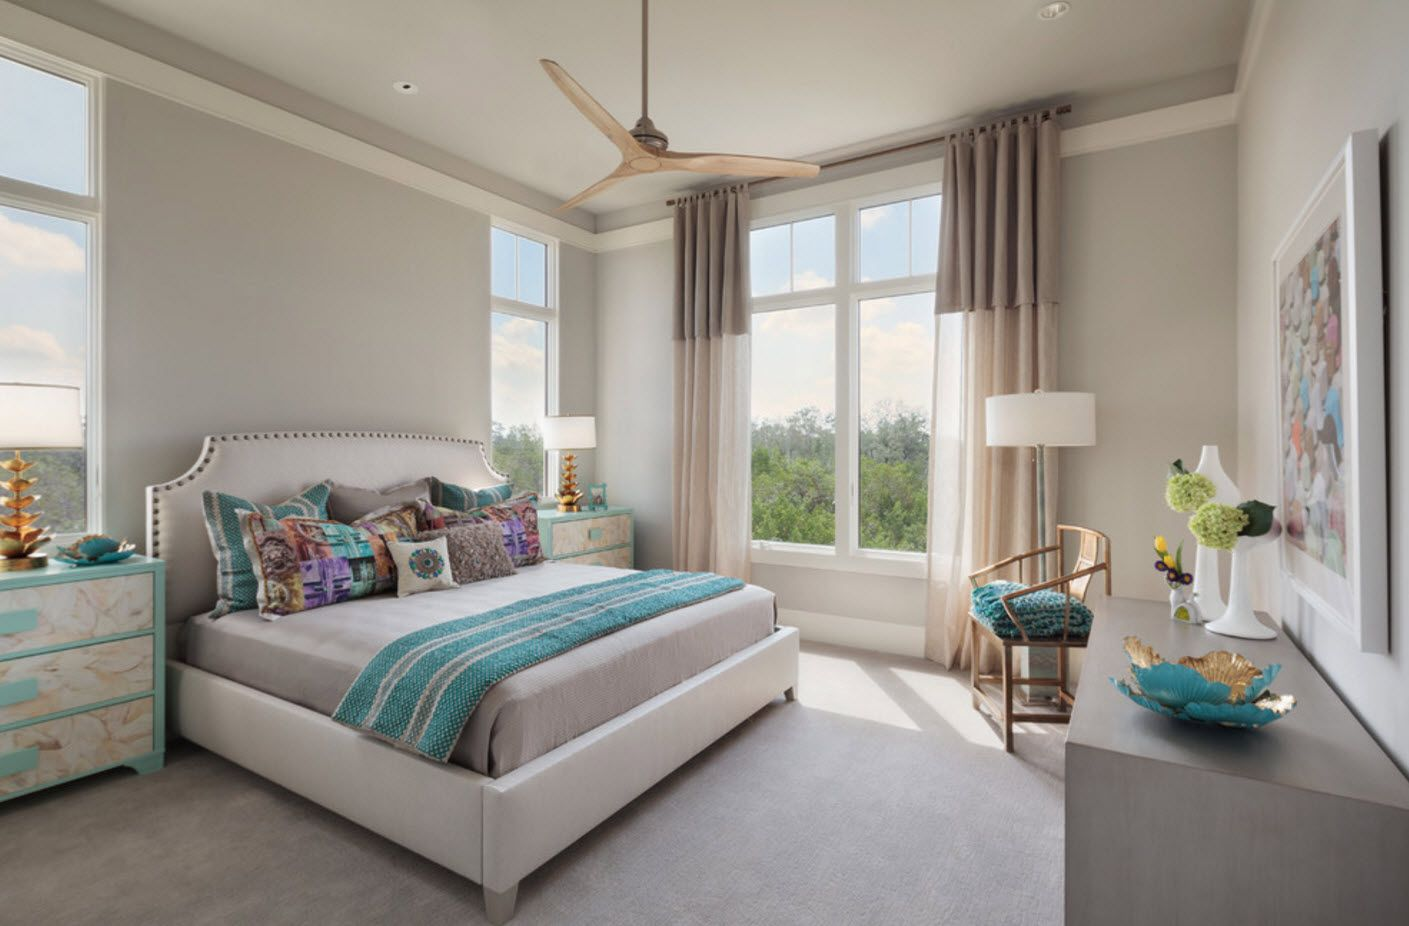 Nice modern atmosphere in the bedroom with platform bed and large windows